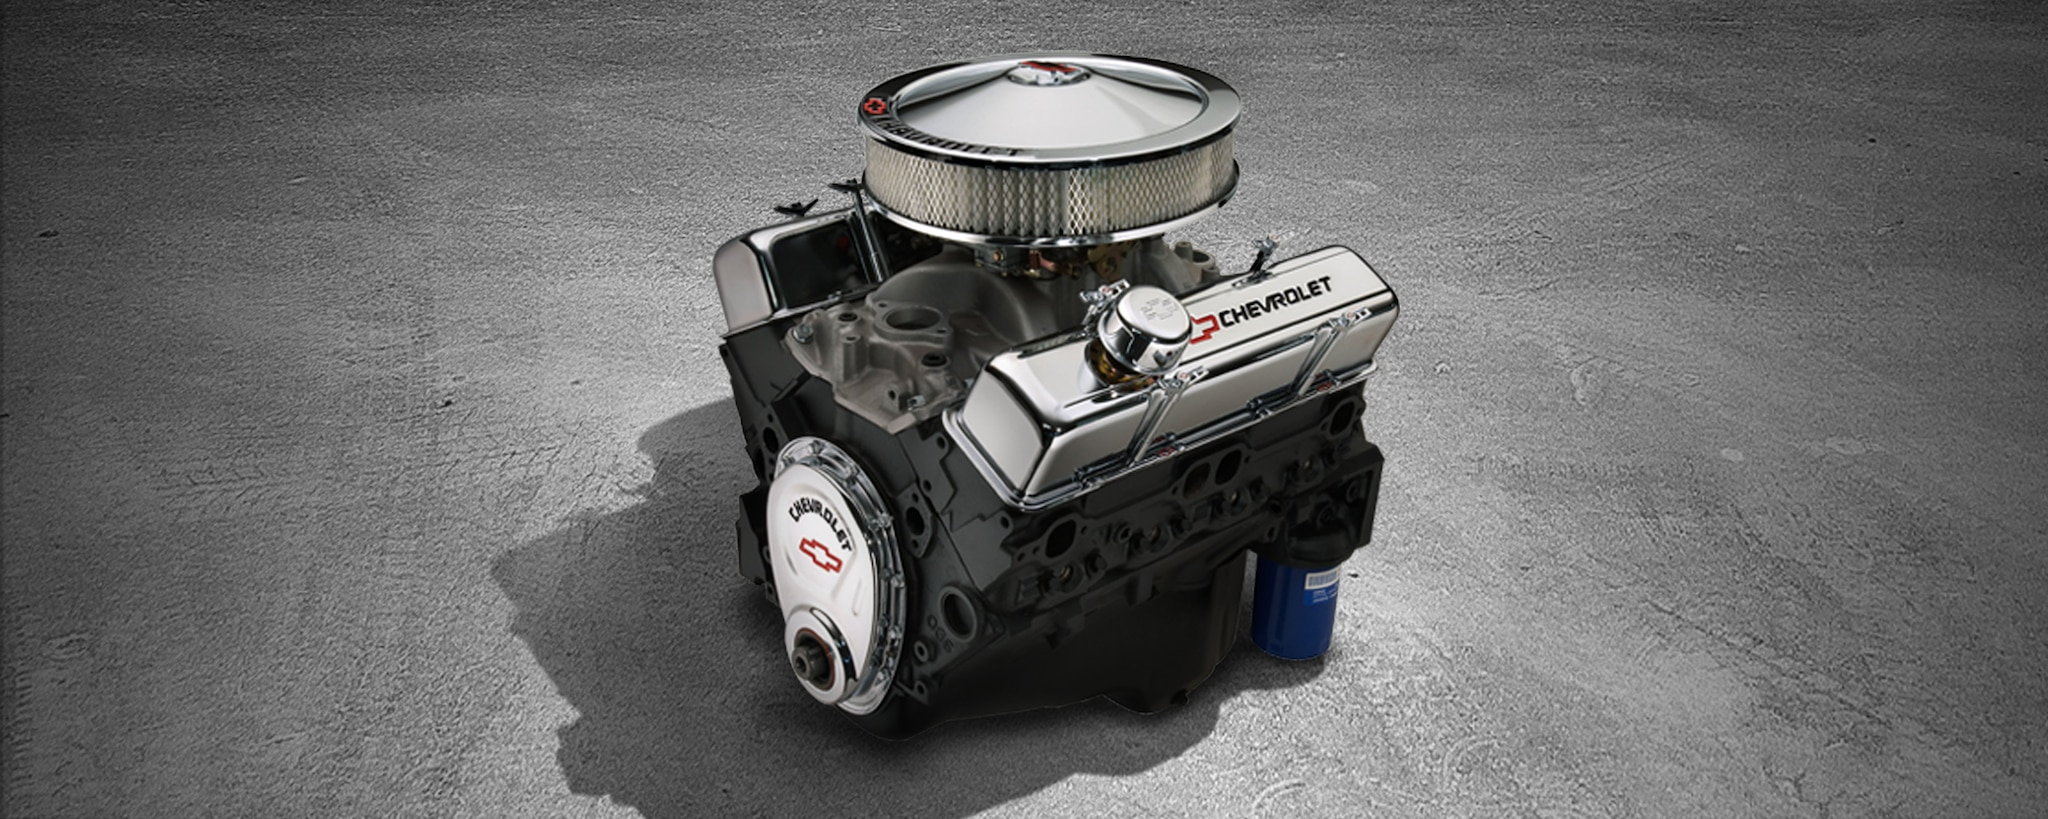 cp-2016-engines-detail-350-290 Deluxe-masthead.jpg